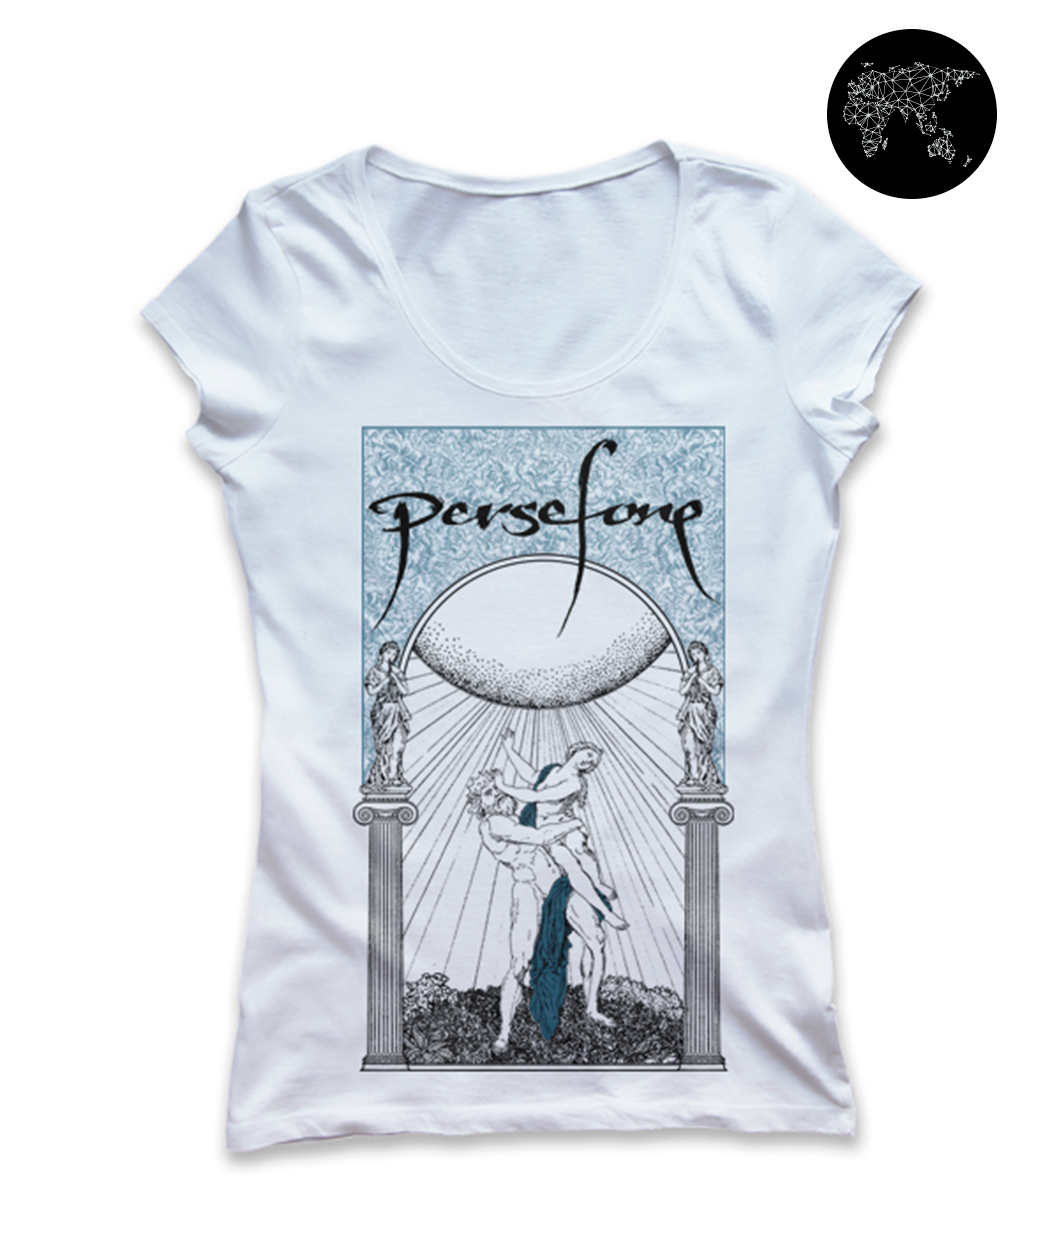 Persefone Goddess and Hades T-shirt Europe